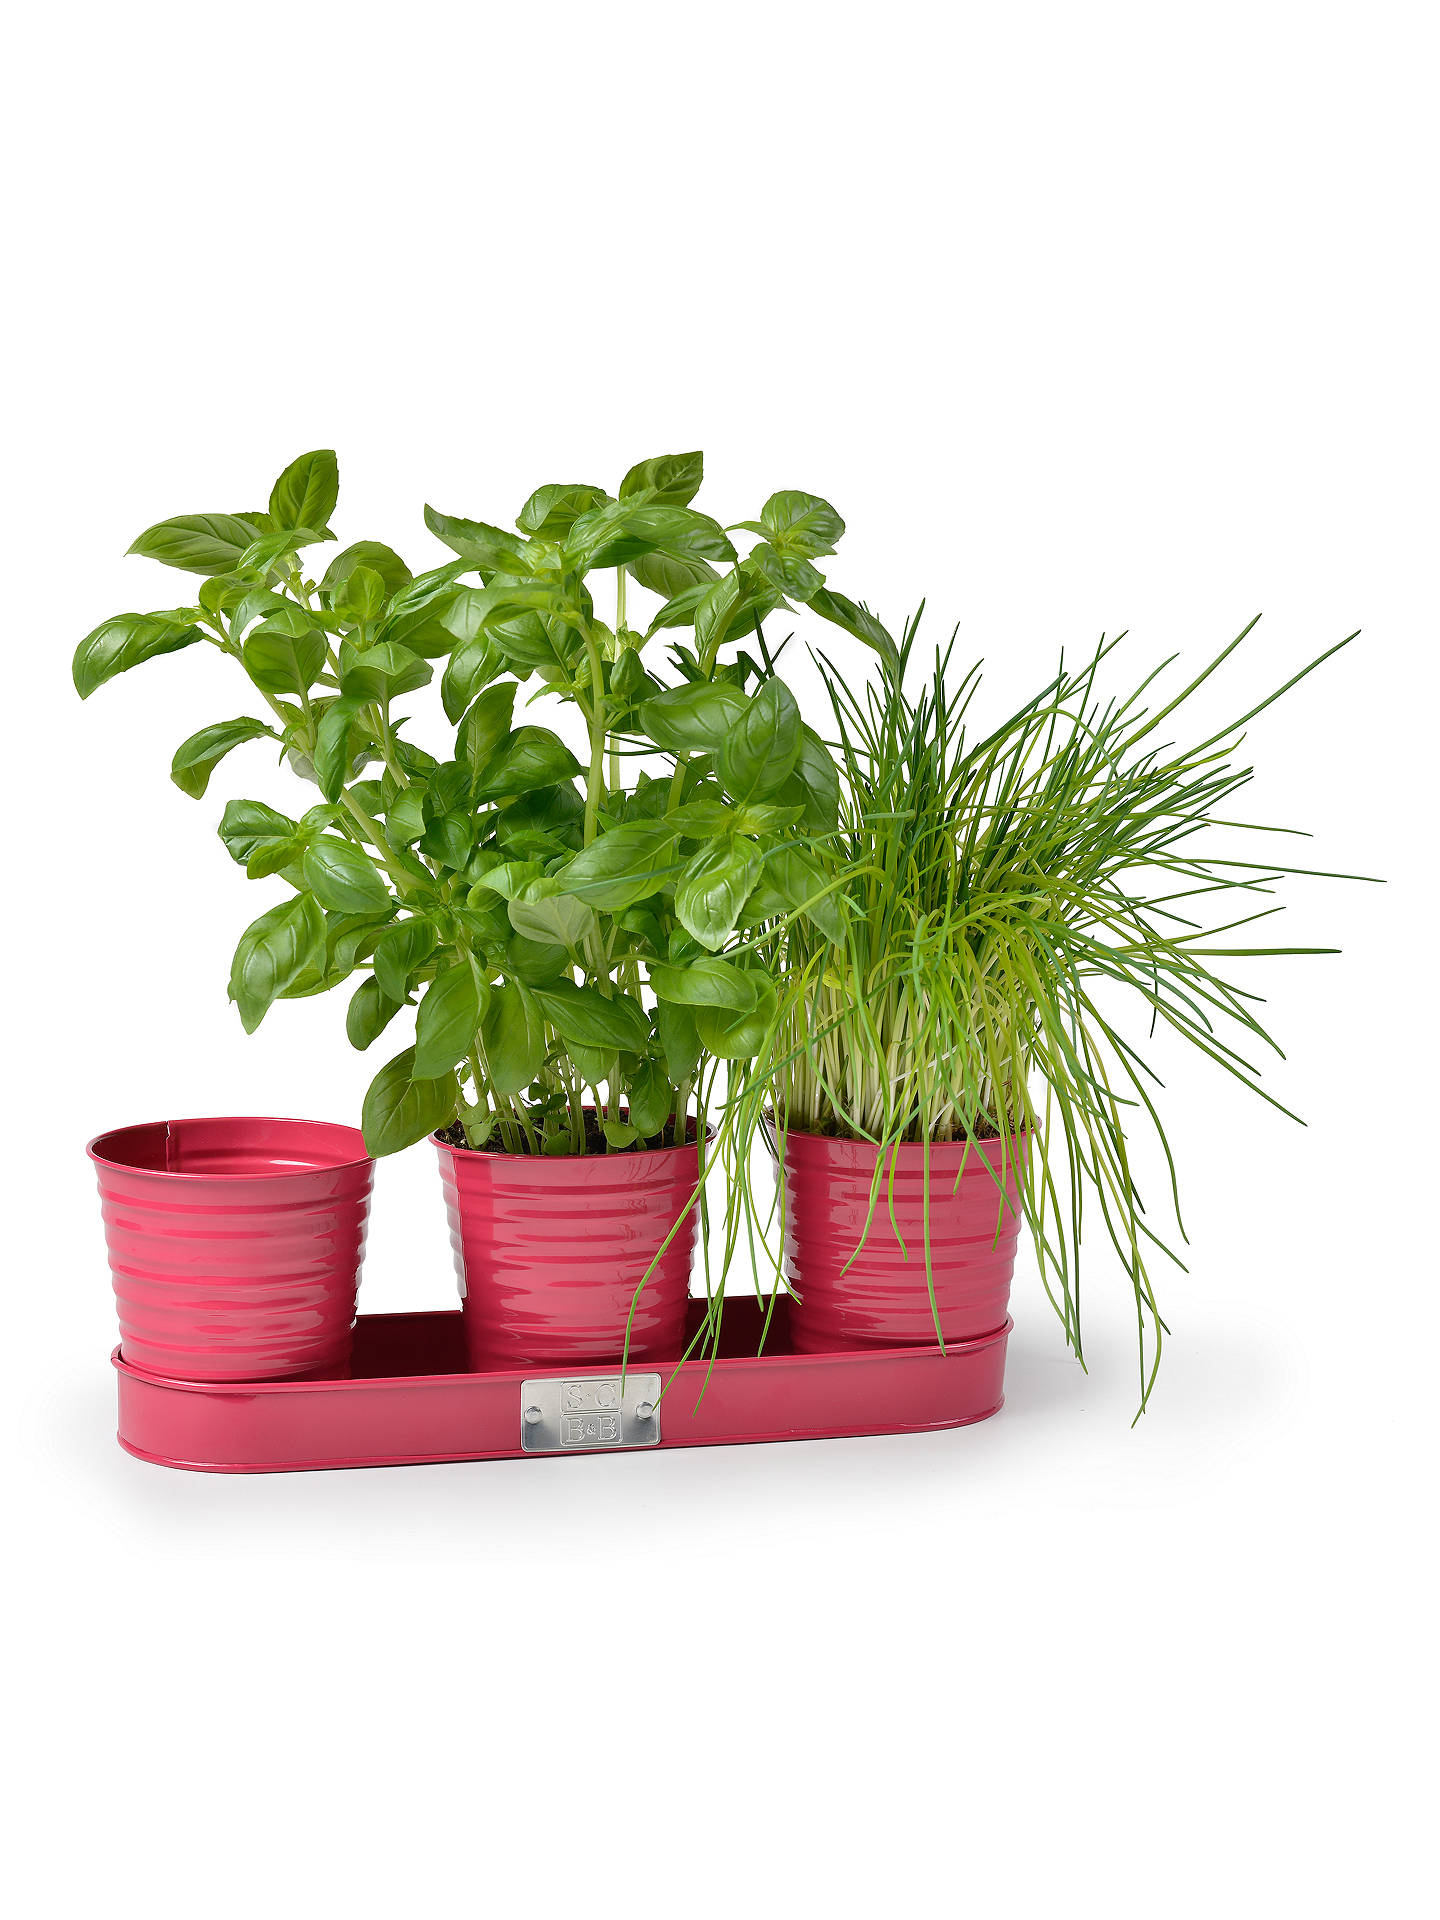 Buy Sophie Conran for Burgon & Ball Herb Pots, Raspberry Online at johnlewis.com